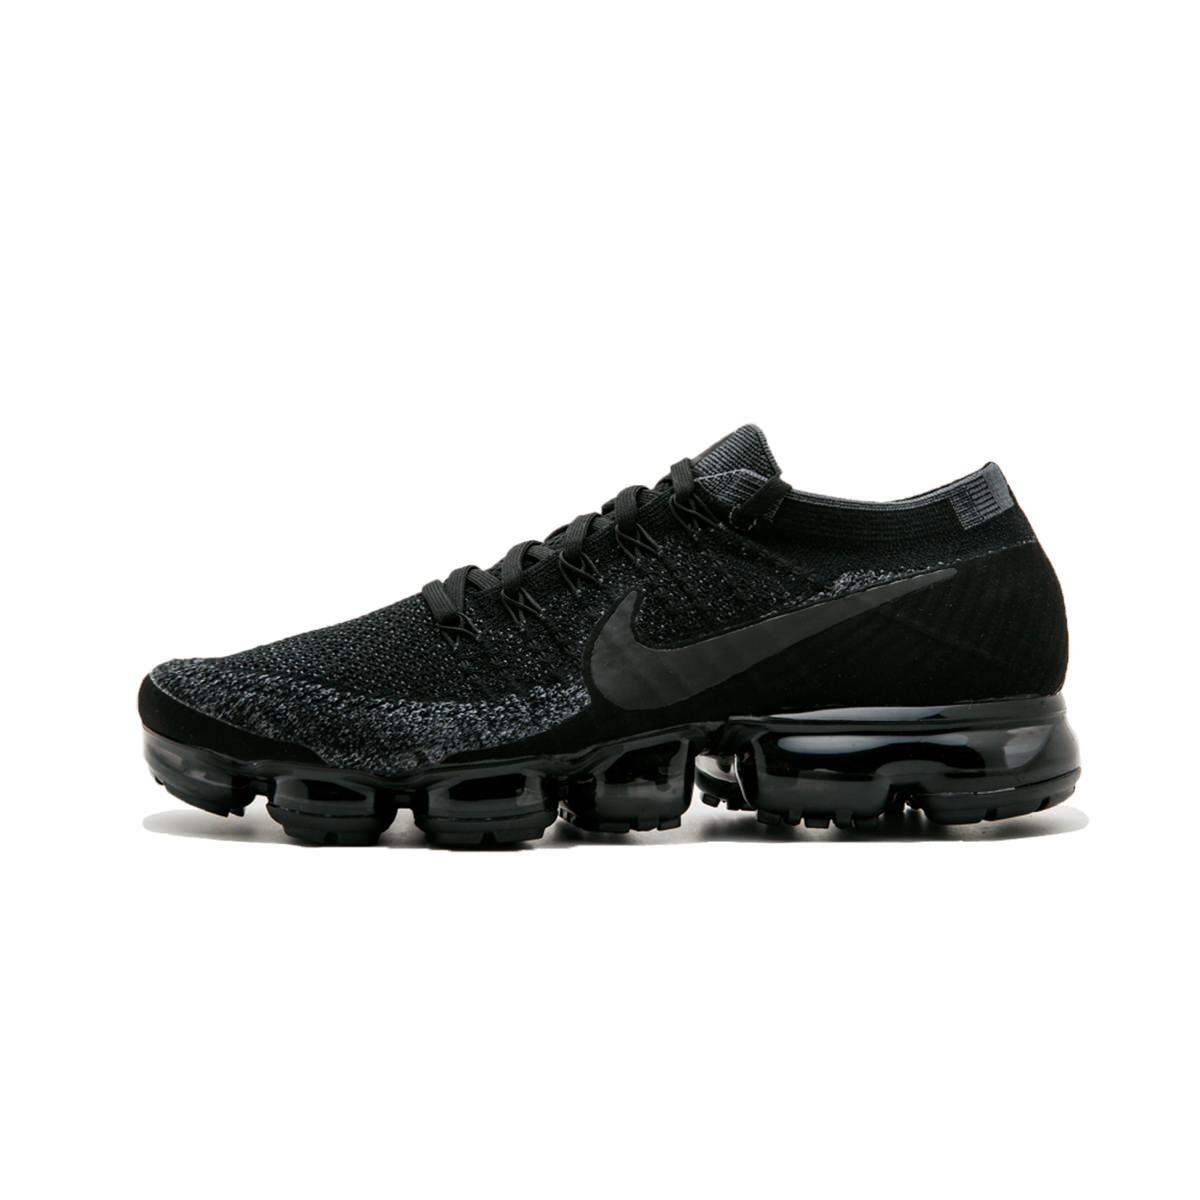 uk availability 7e940 3b74b Air VaporMax Oreo 2.0